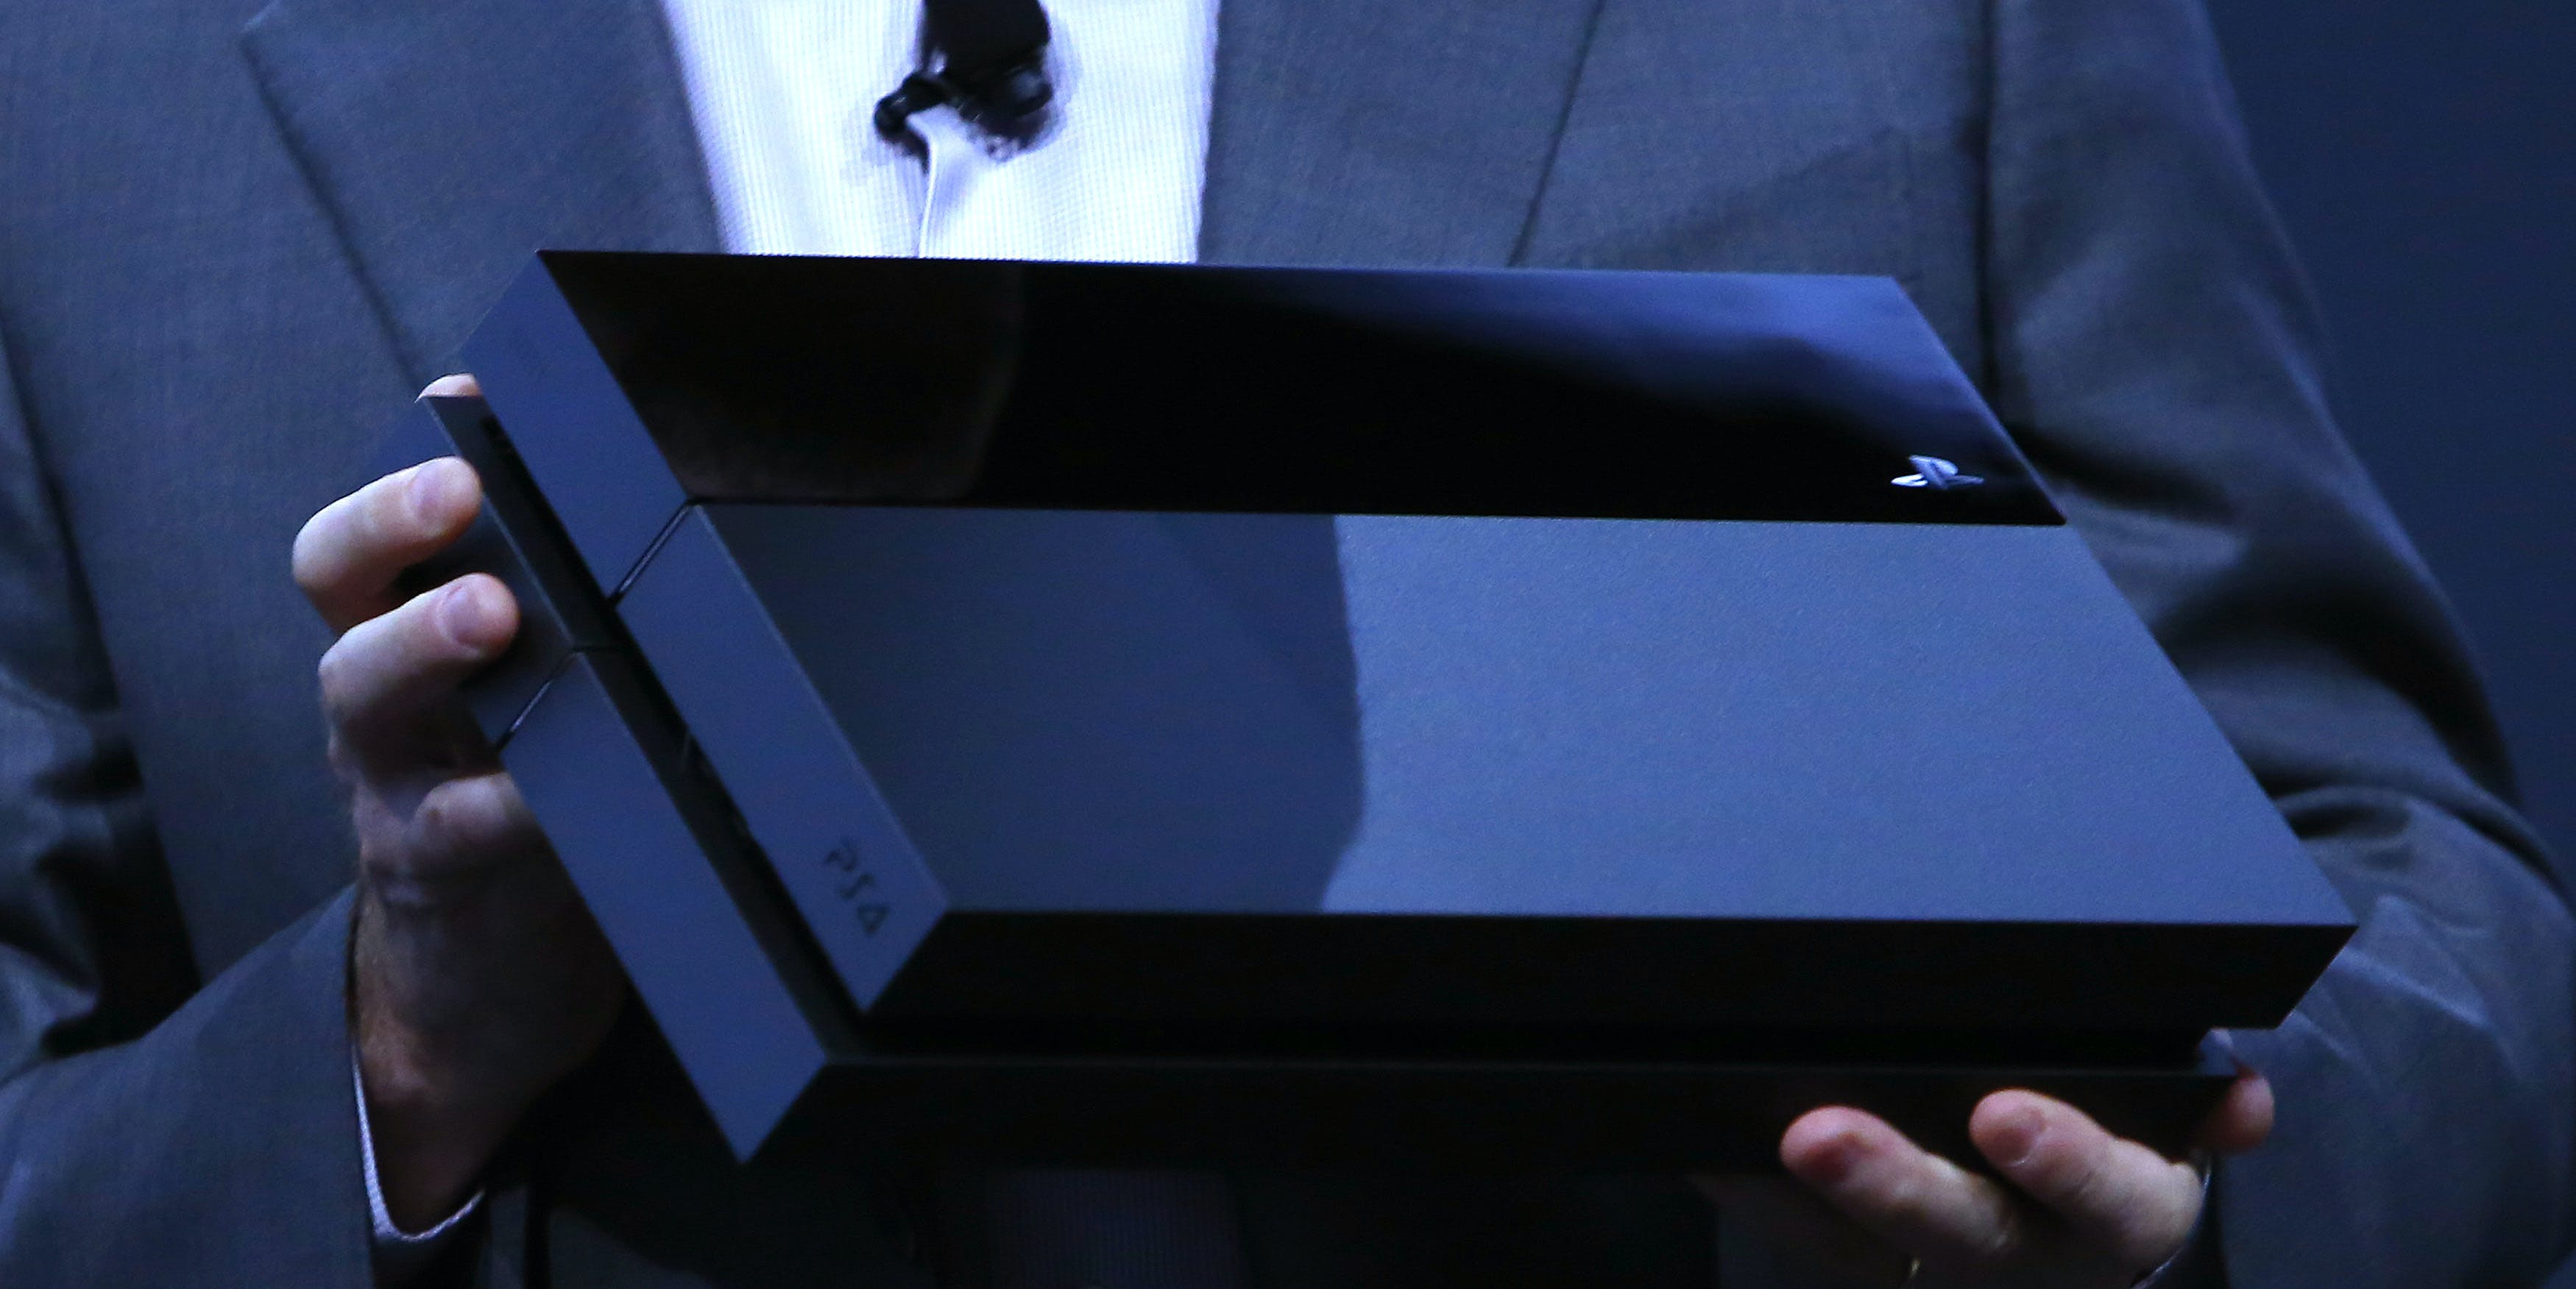 LOS ANGELES, CA - JUNE 10:  Andrew House, President and Group CEO Sony Computer Entertainment Inc., holds up a Playstation 4 at the Sony Playstation E3 2013 press conference June 10, 2013 in Los Angeles, California. Thousands are expected to attend the annual three-day convention to see the latest games and announcements from the gaming industry.(Photo by Eric Thayer/Getty Images)